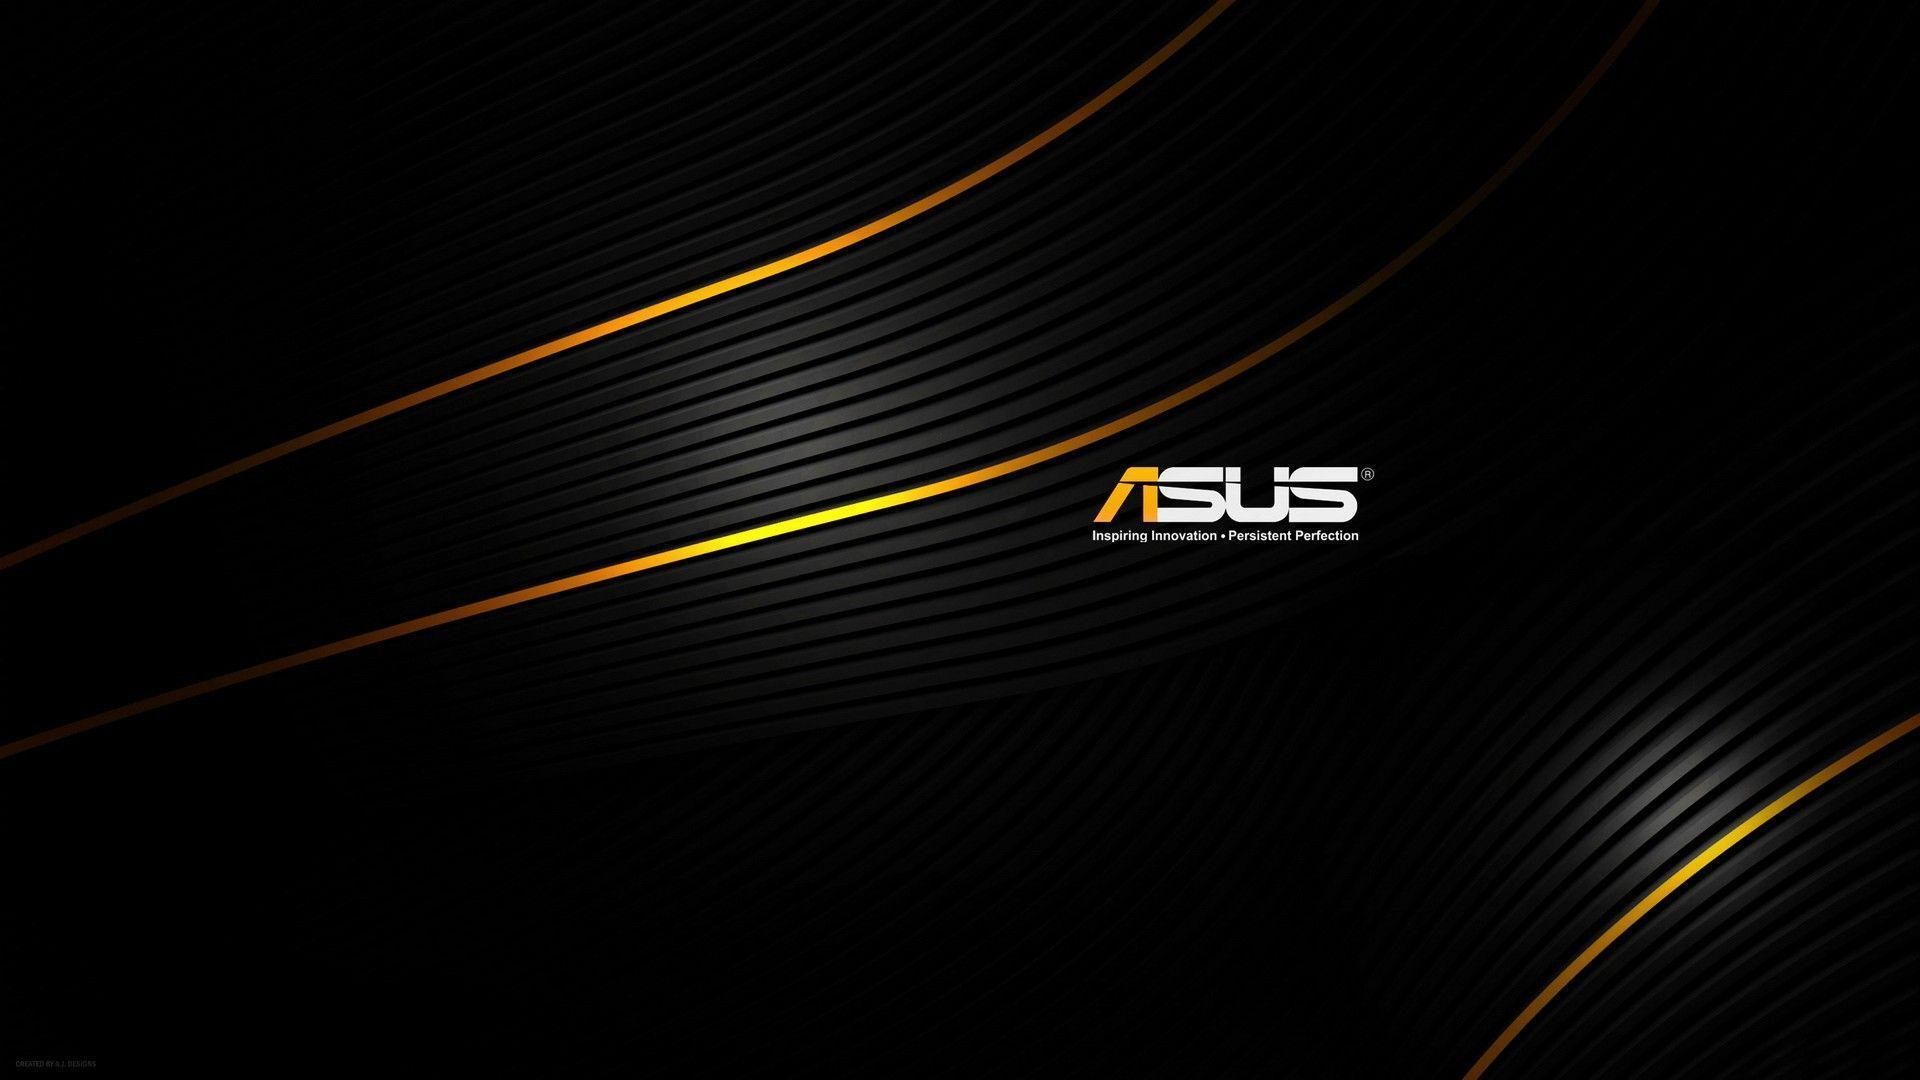 Asus Wallpapers HD 1920x1080